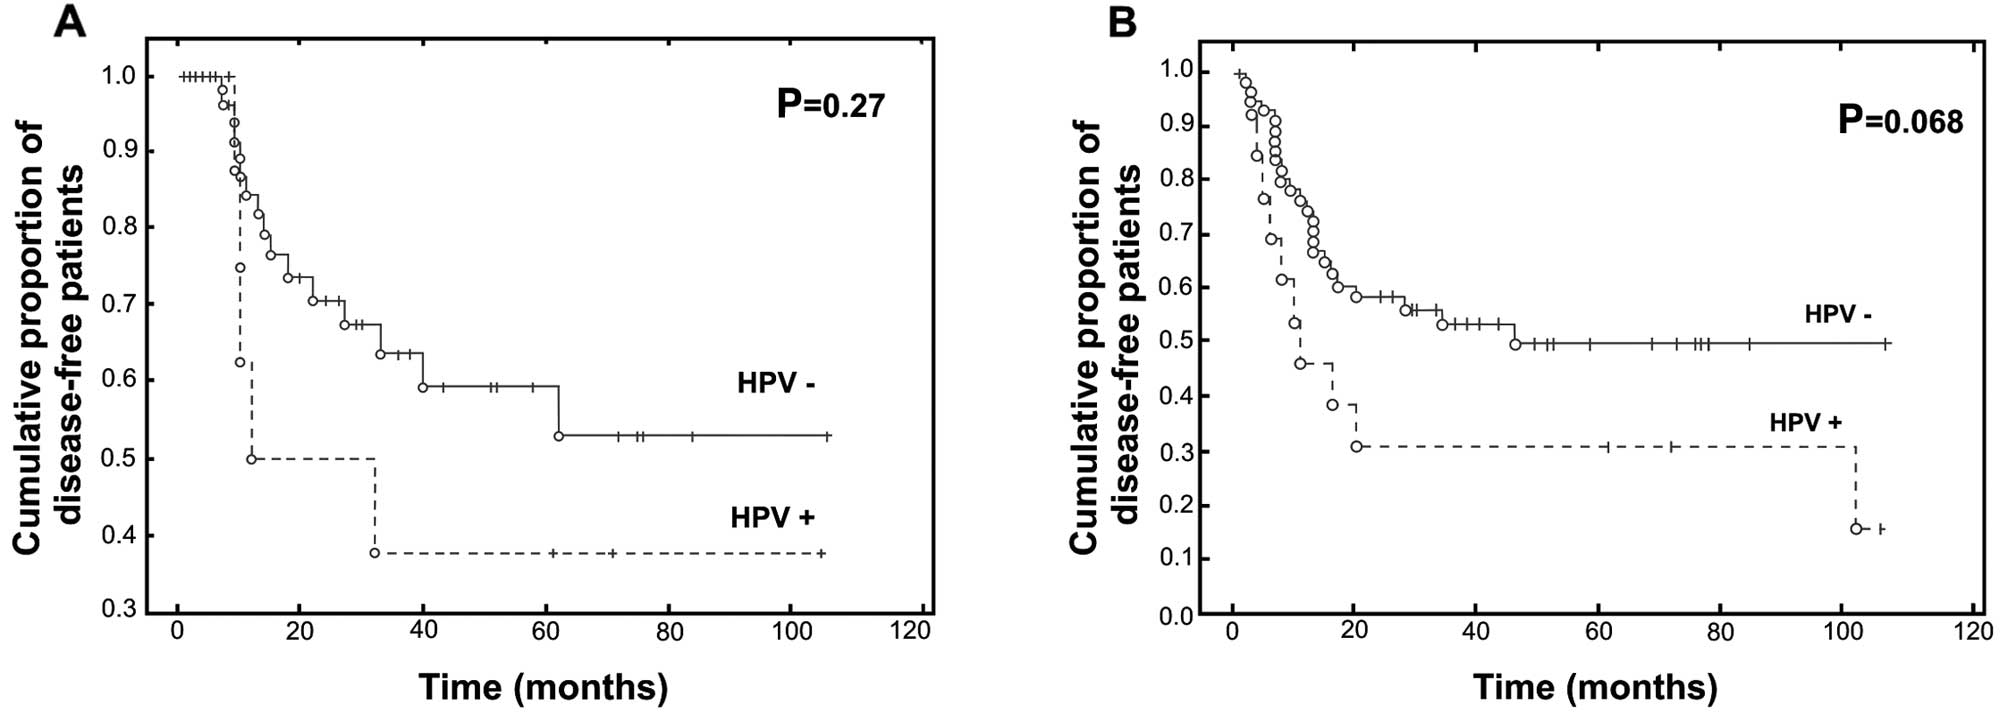 hpv throat cancer recurrence survival rate)